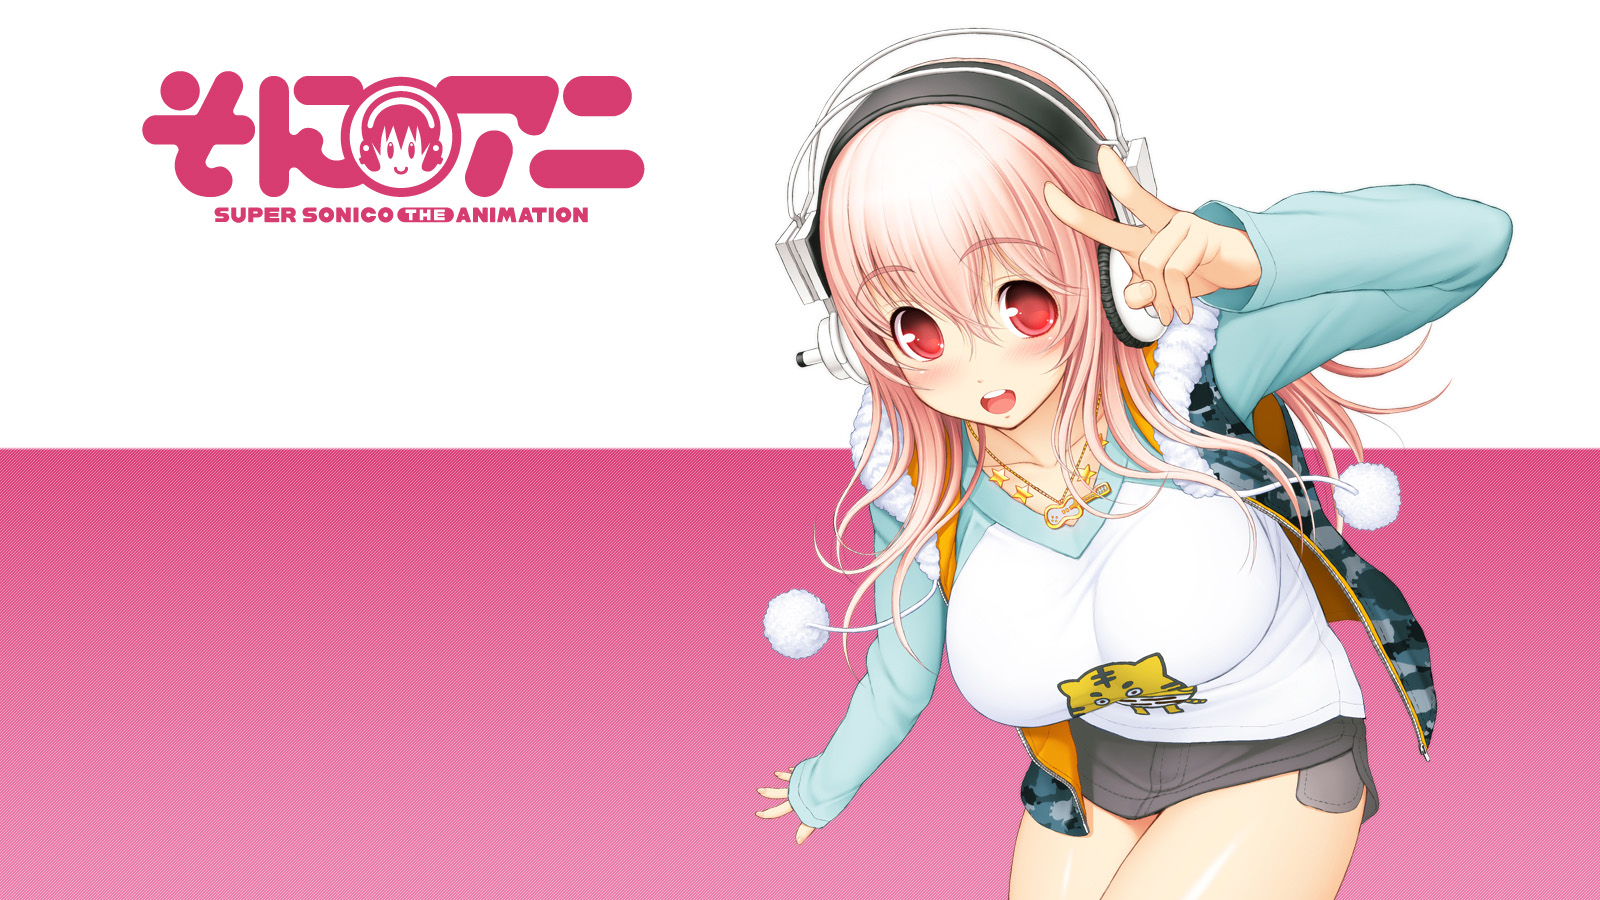 NekoPOP-Super-Sonico-Animation-announcement-2013-11-04